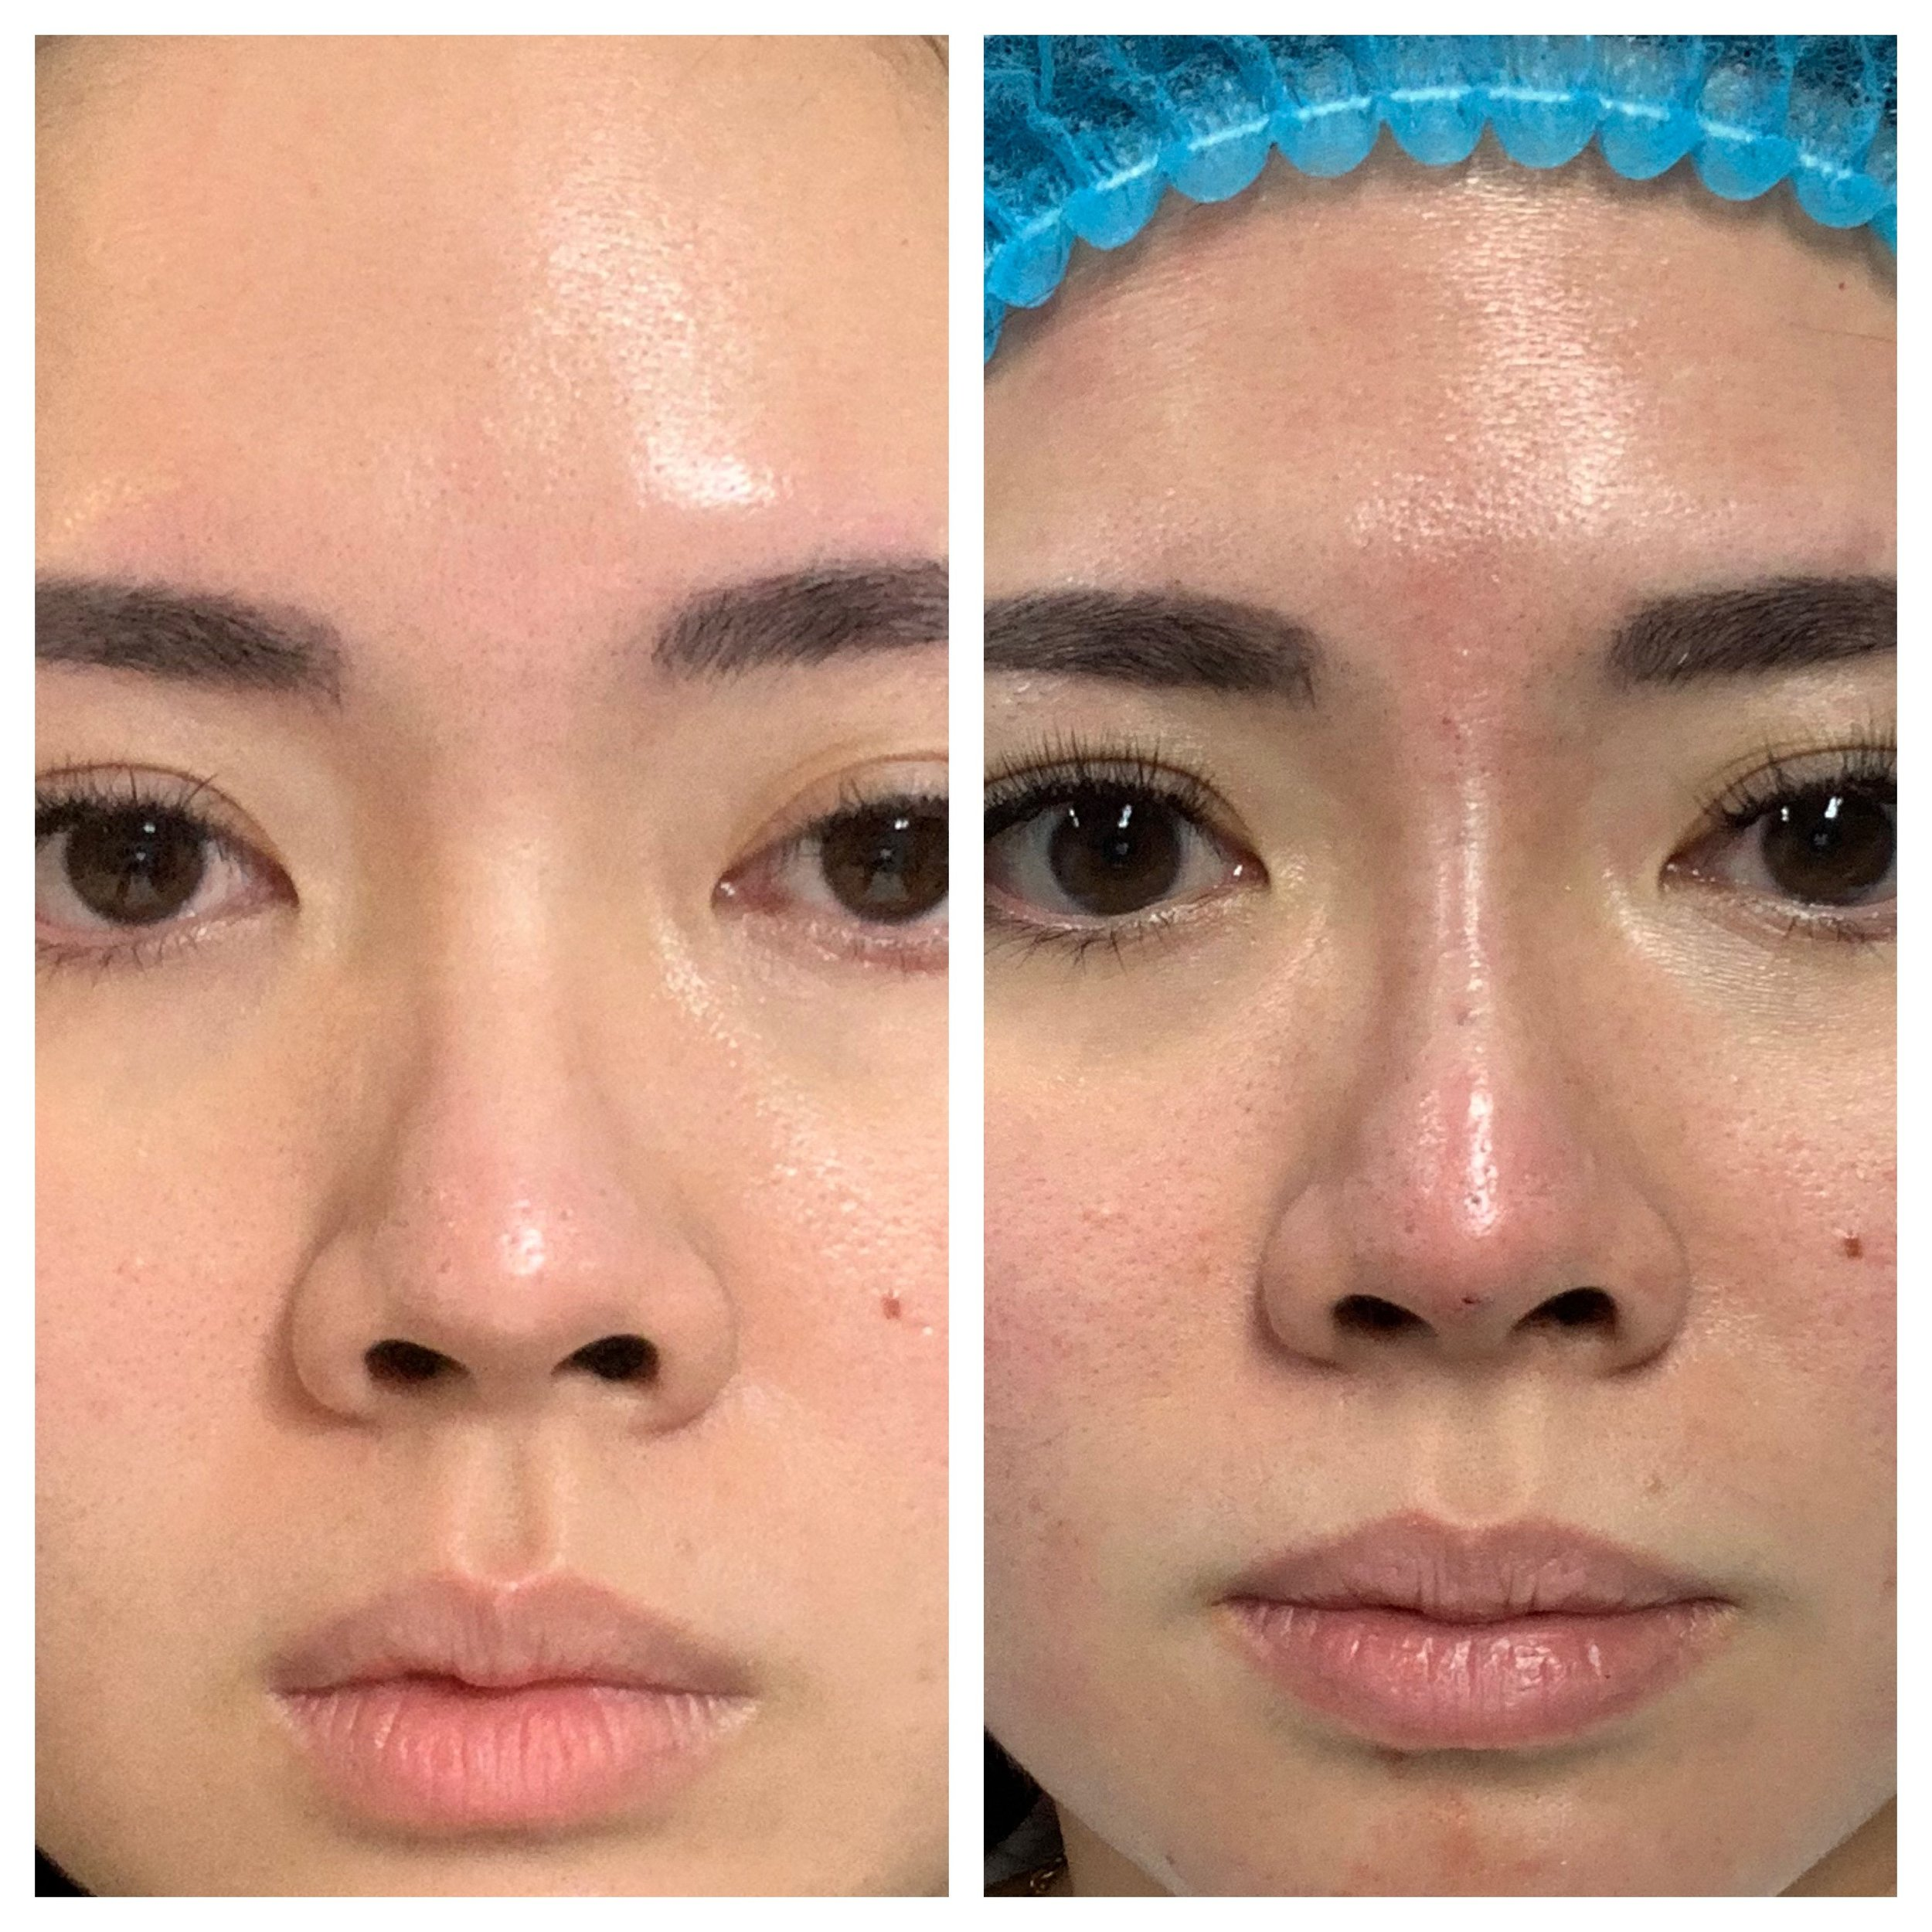 Before/After - Immediately after procedure